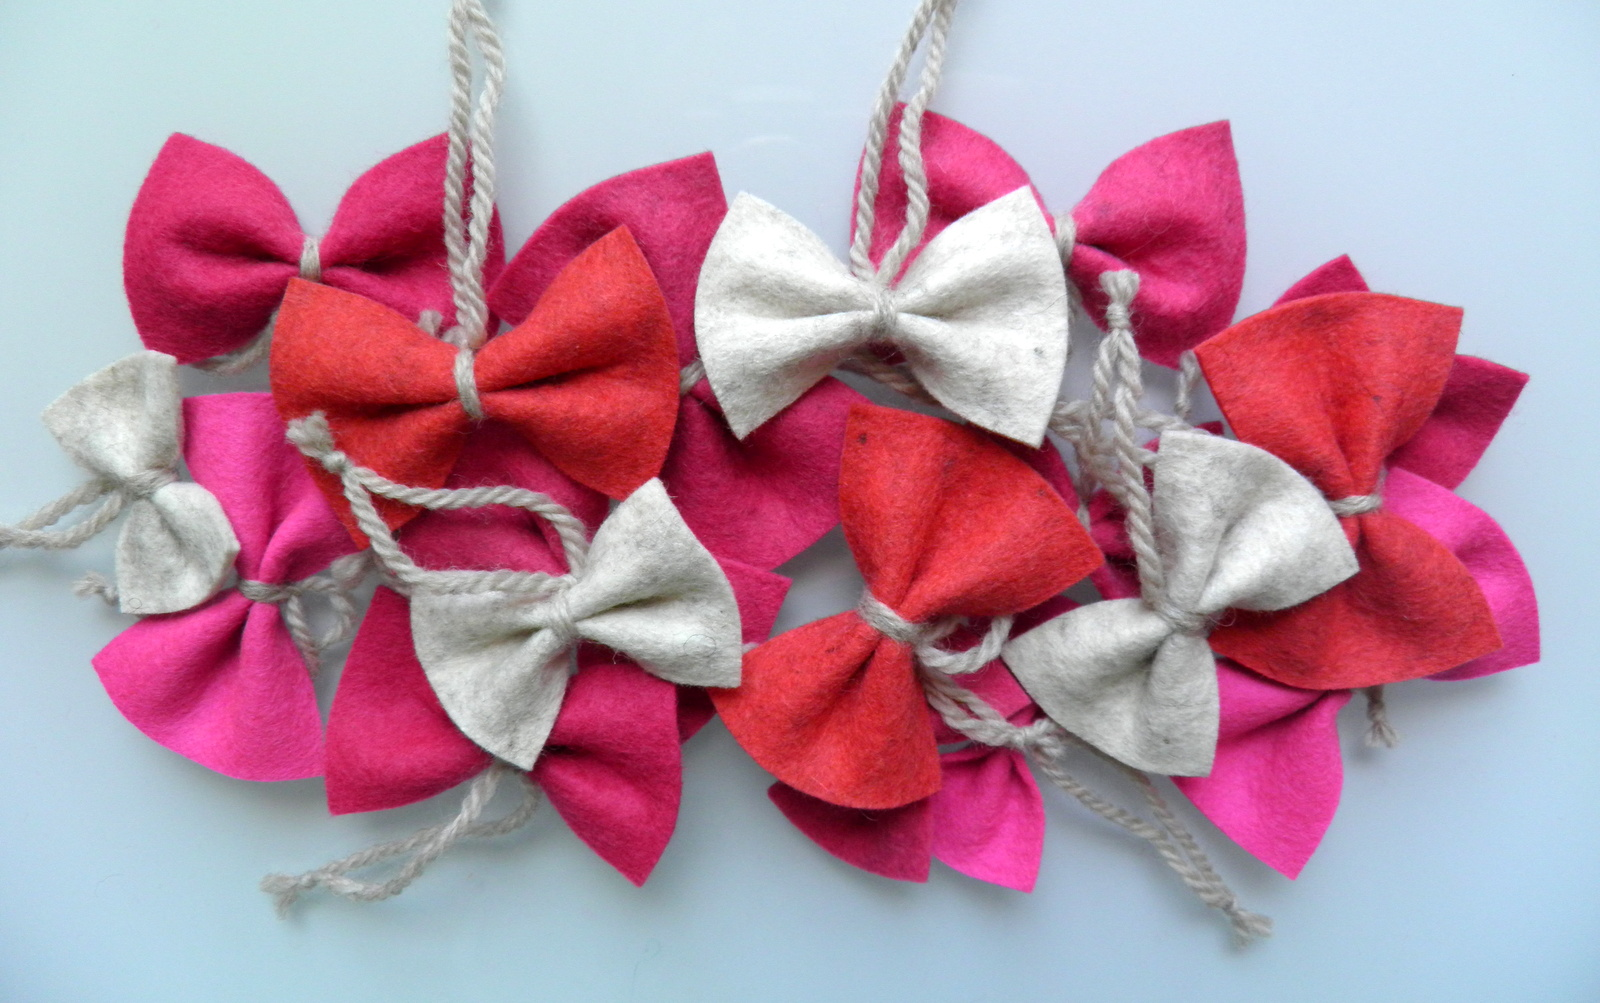 Diy Bow Ornaments For Your Christmas Tree Affordable Super Easy No Sewing Involved Bamboola Baby